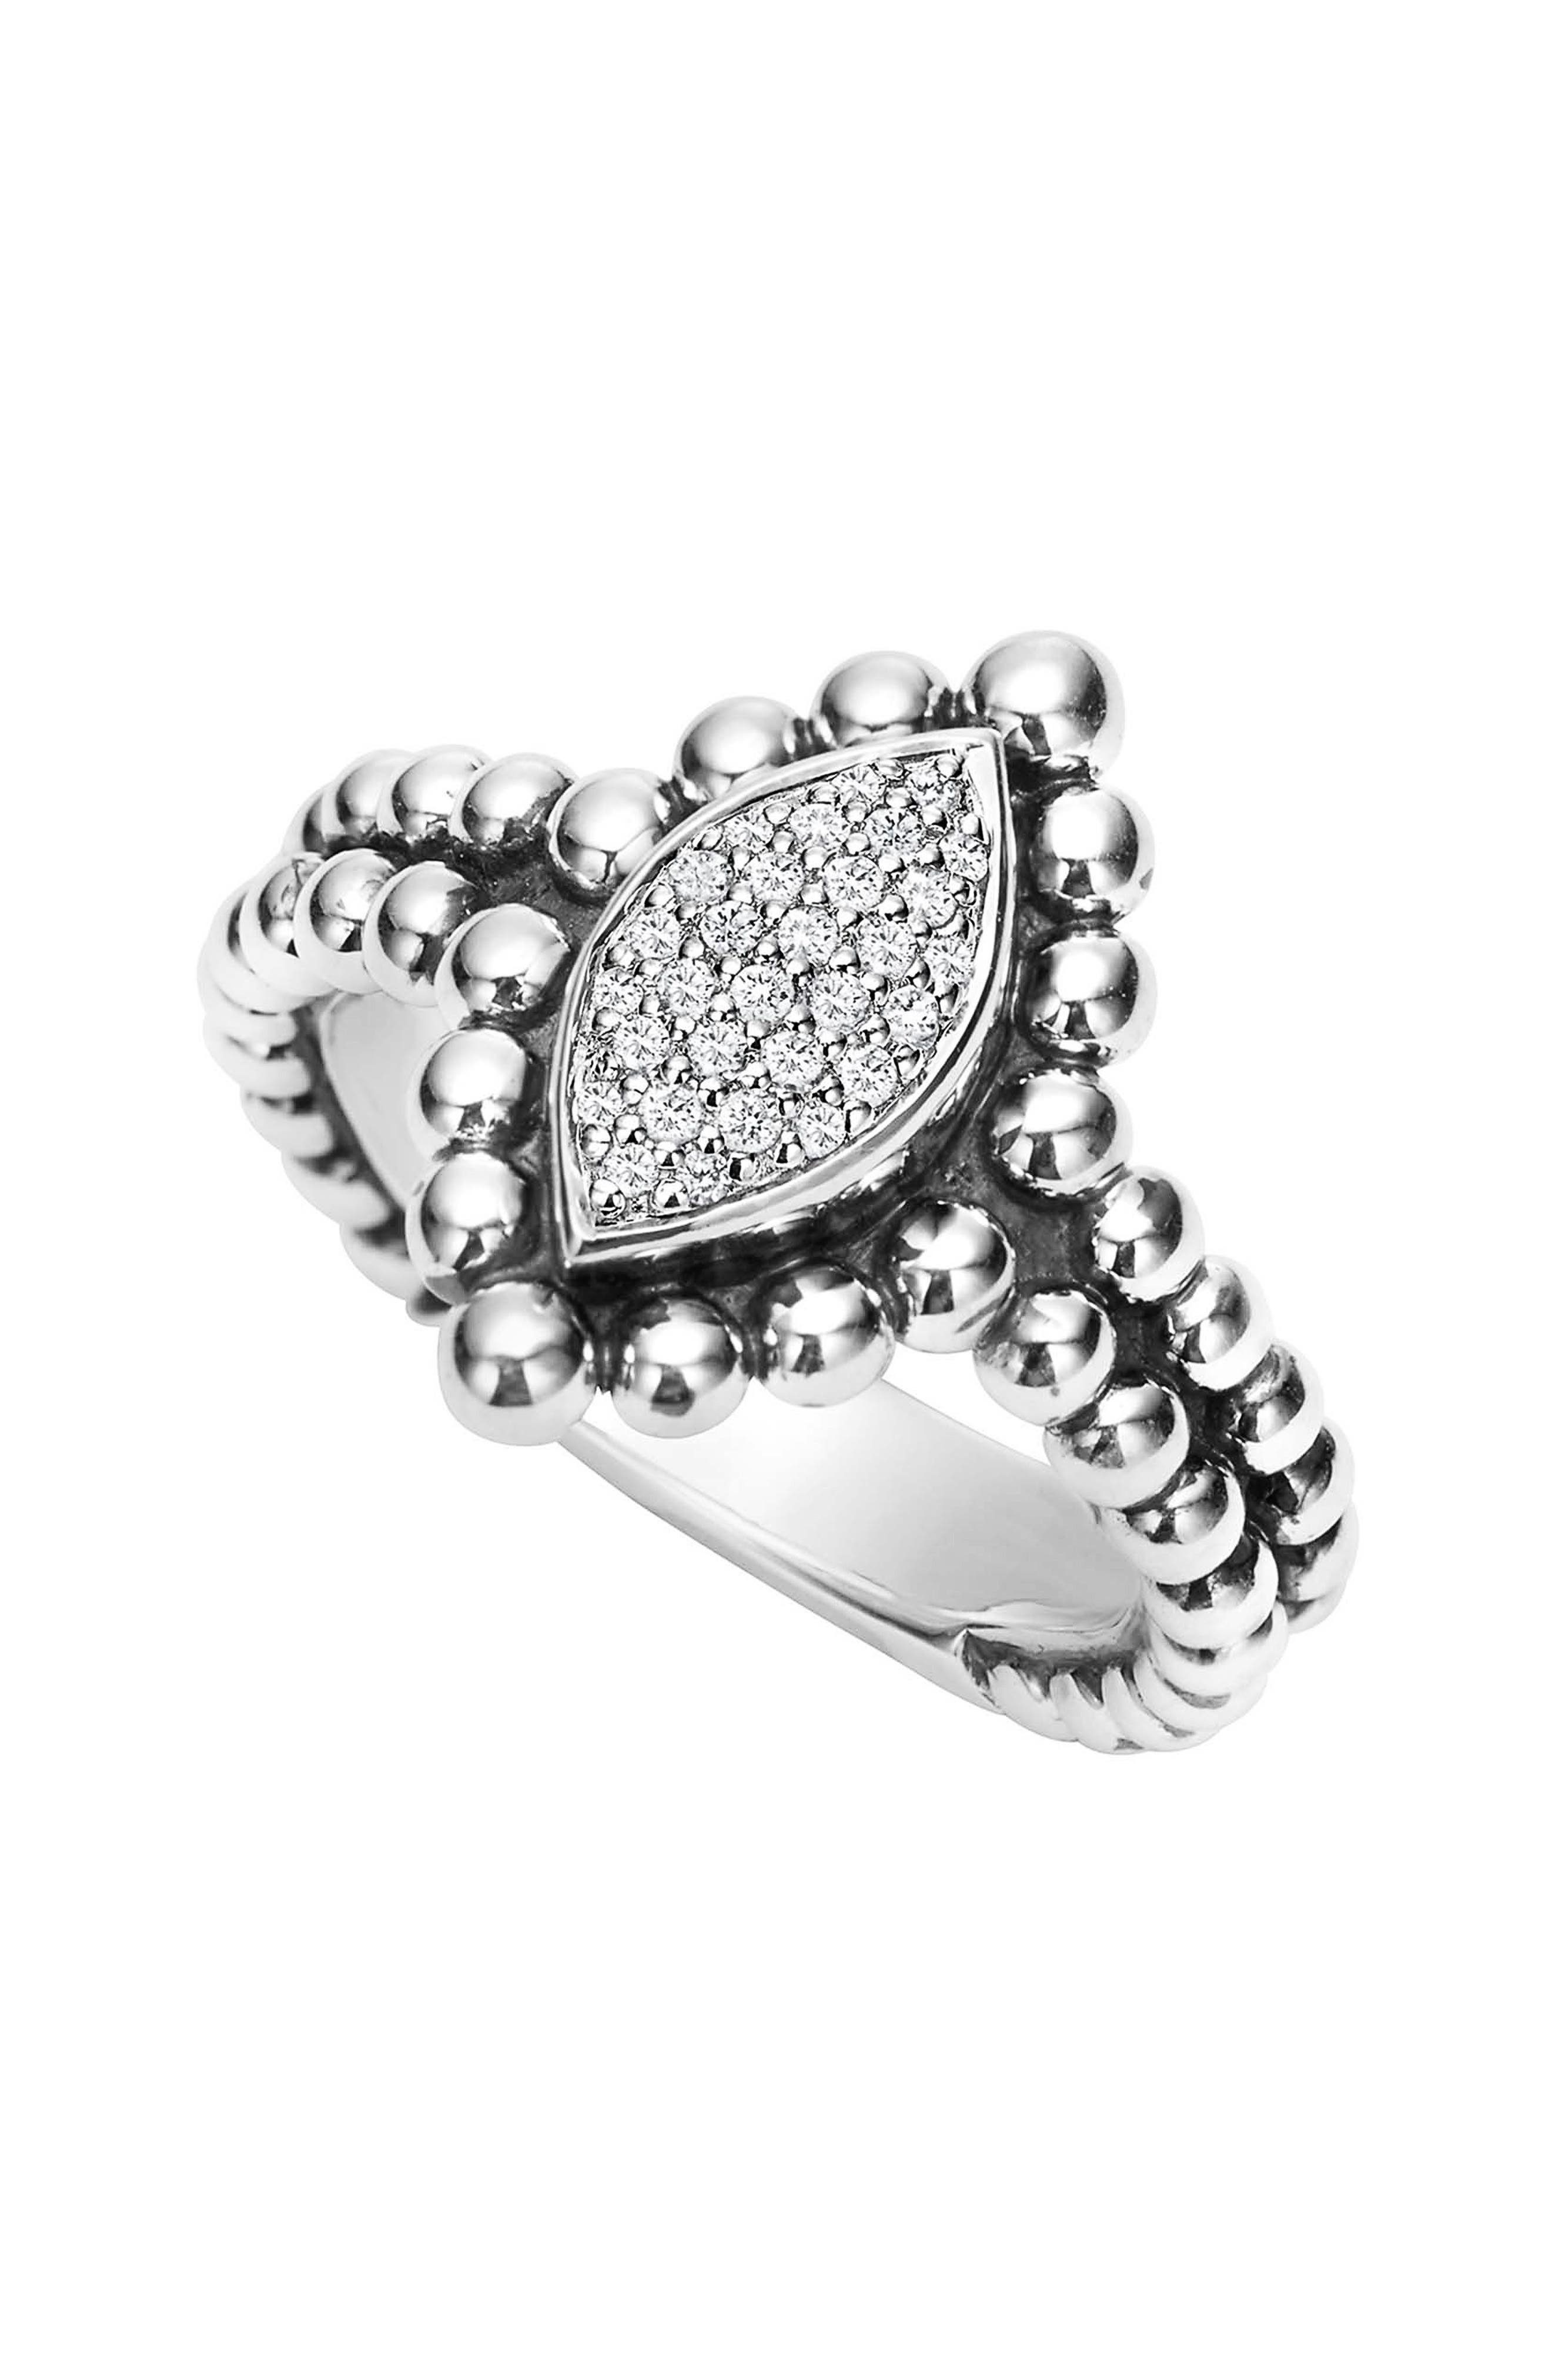 Caviar Spark Diamond Marquise Ring,                             Main thumbnail 1, color,                             SILVER/ DIAMOND